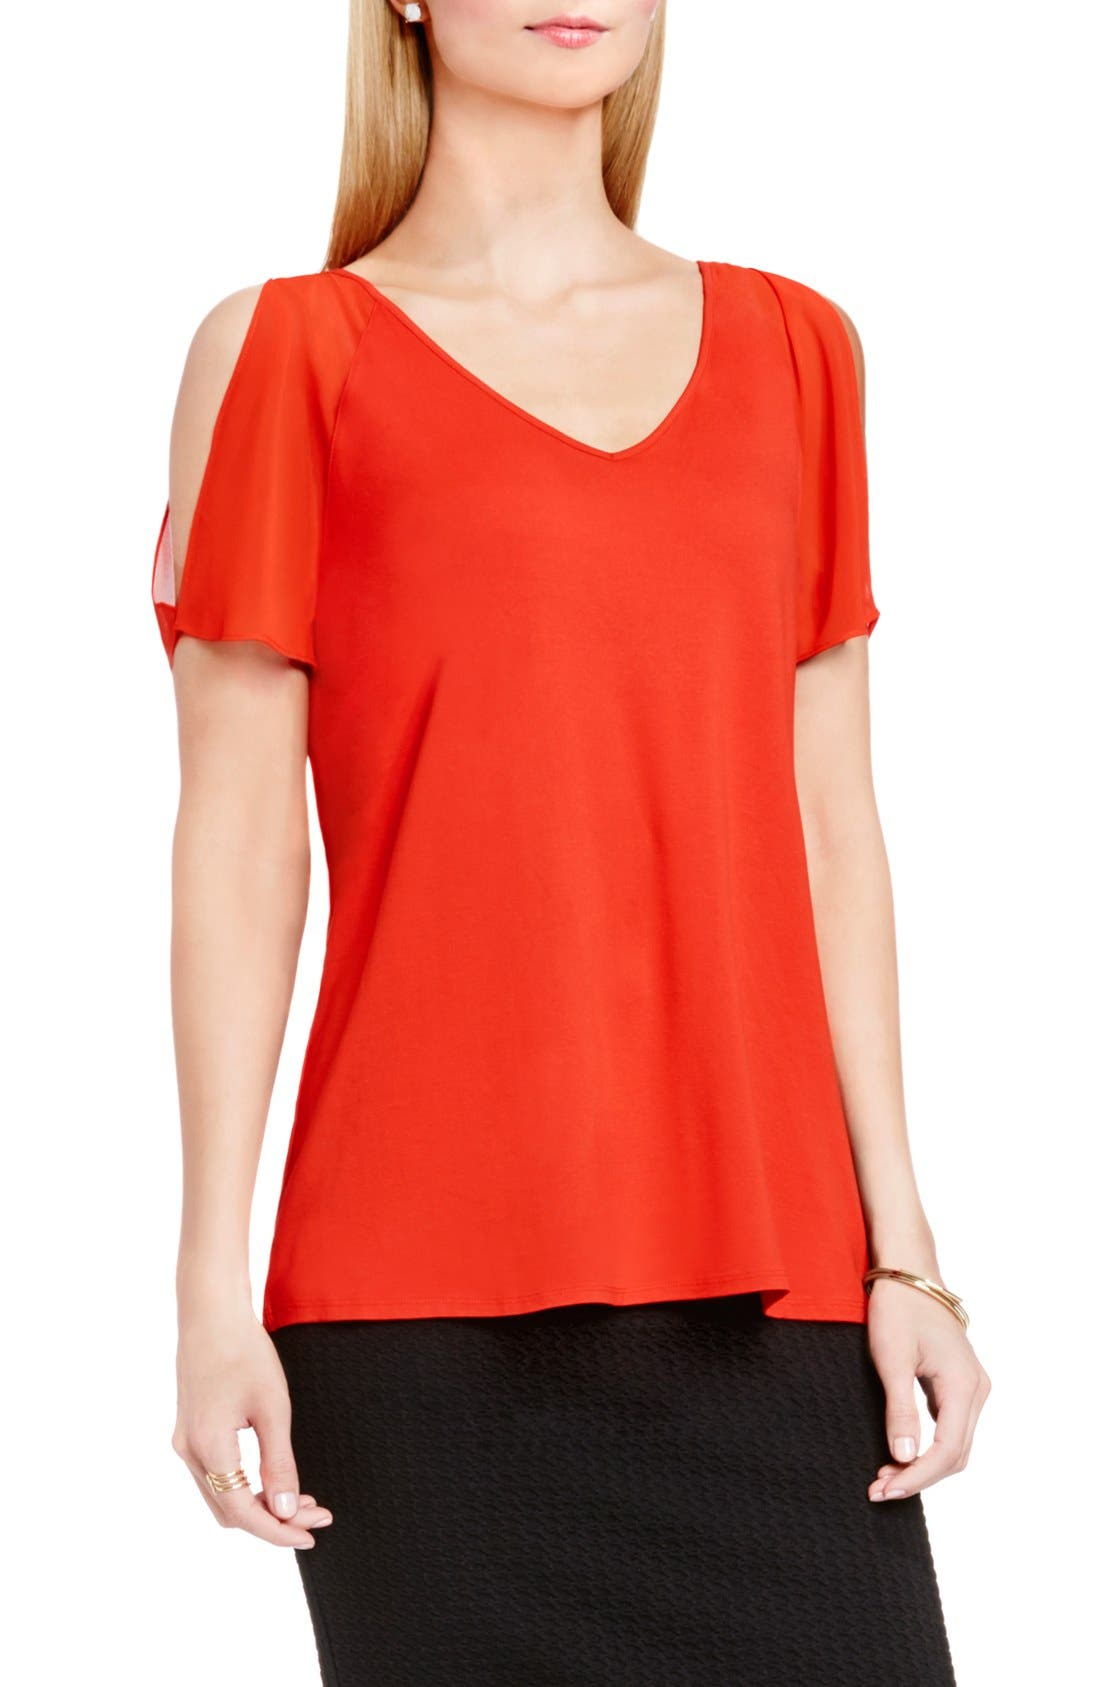 Main Image - Vince Camuto Chiffon Cold Shoulder V-Neck Blouse